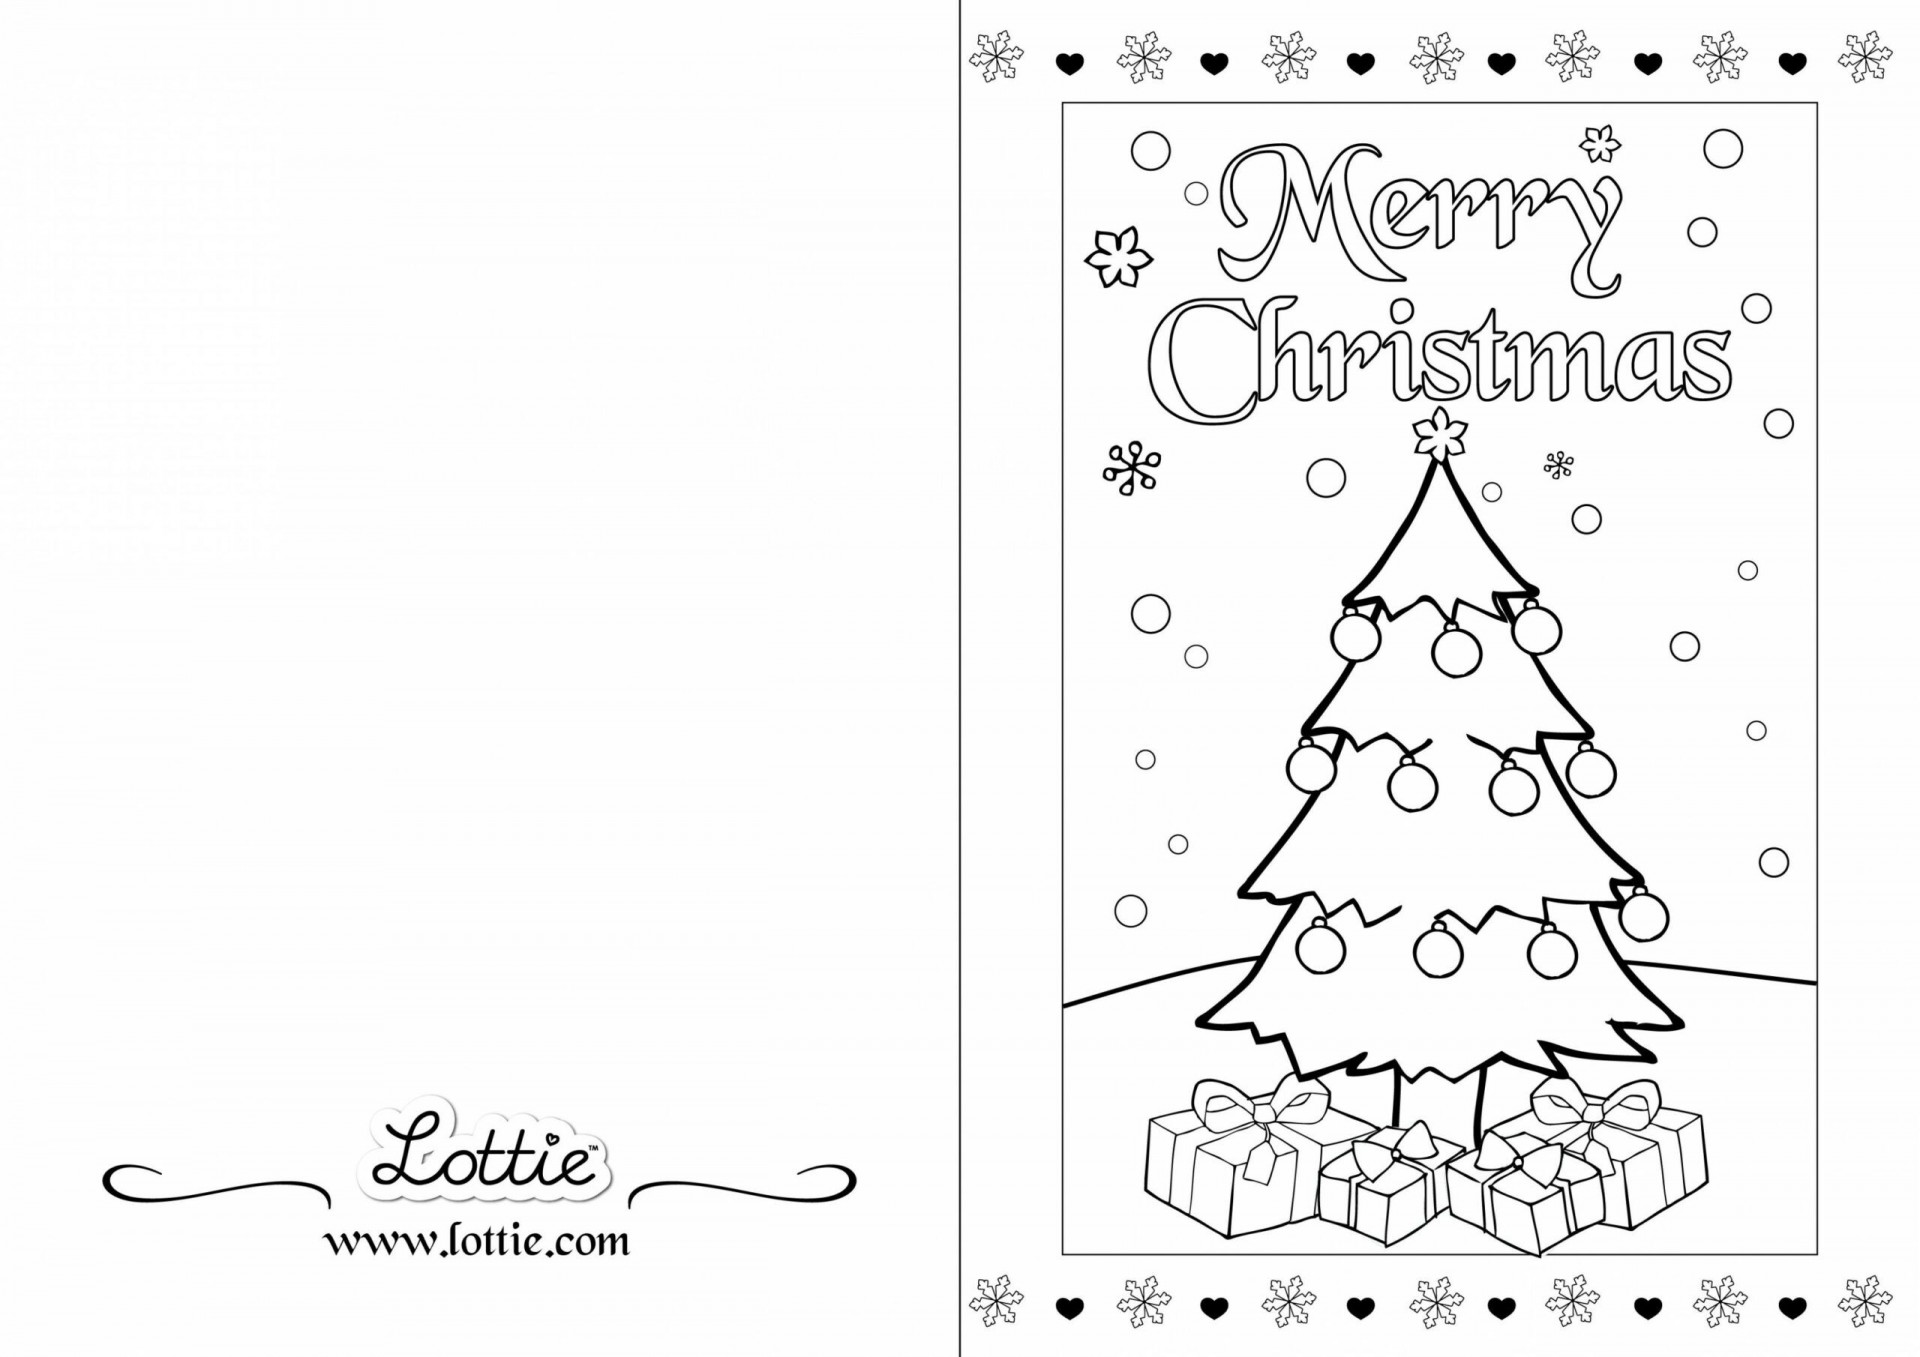 002 Unbelievable Free Printable Holiday Card Template Image  Templates Christma Tent Recipe Gift Holder1920